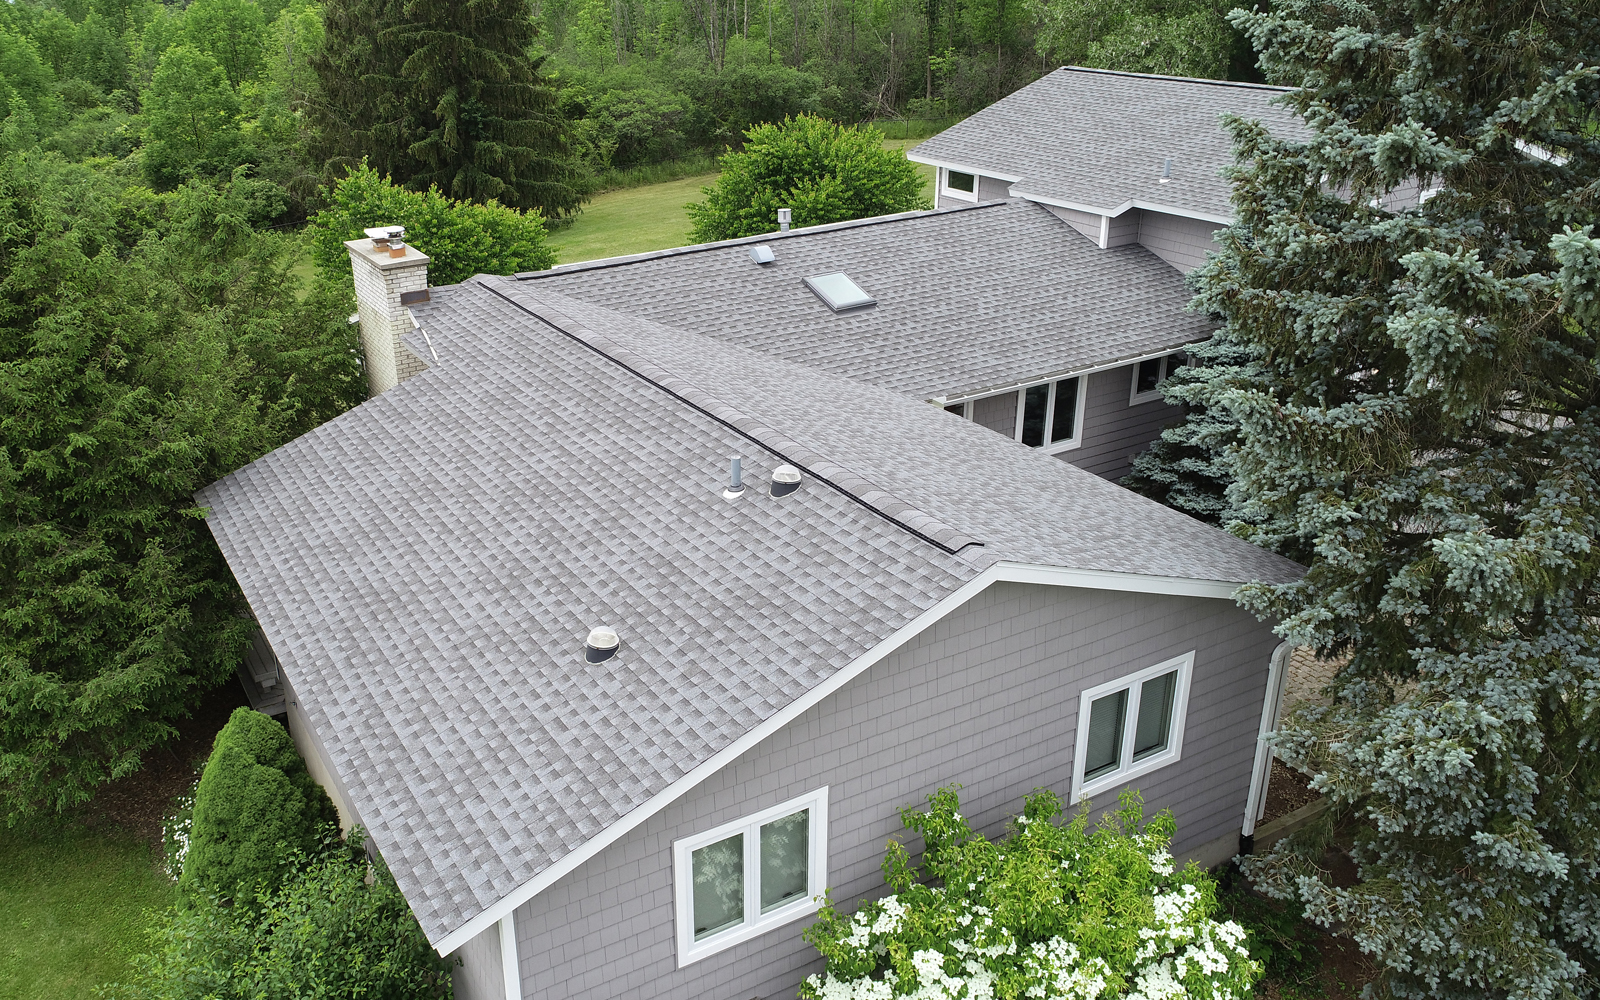 roofing lifetime guarantee in syracuse ny